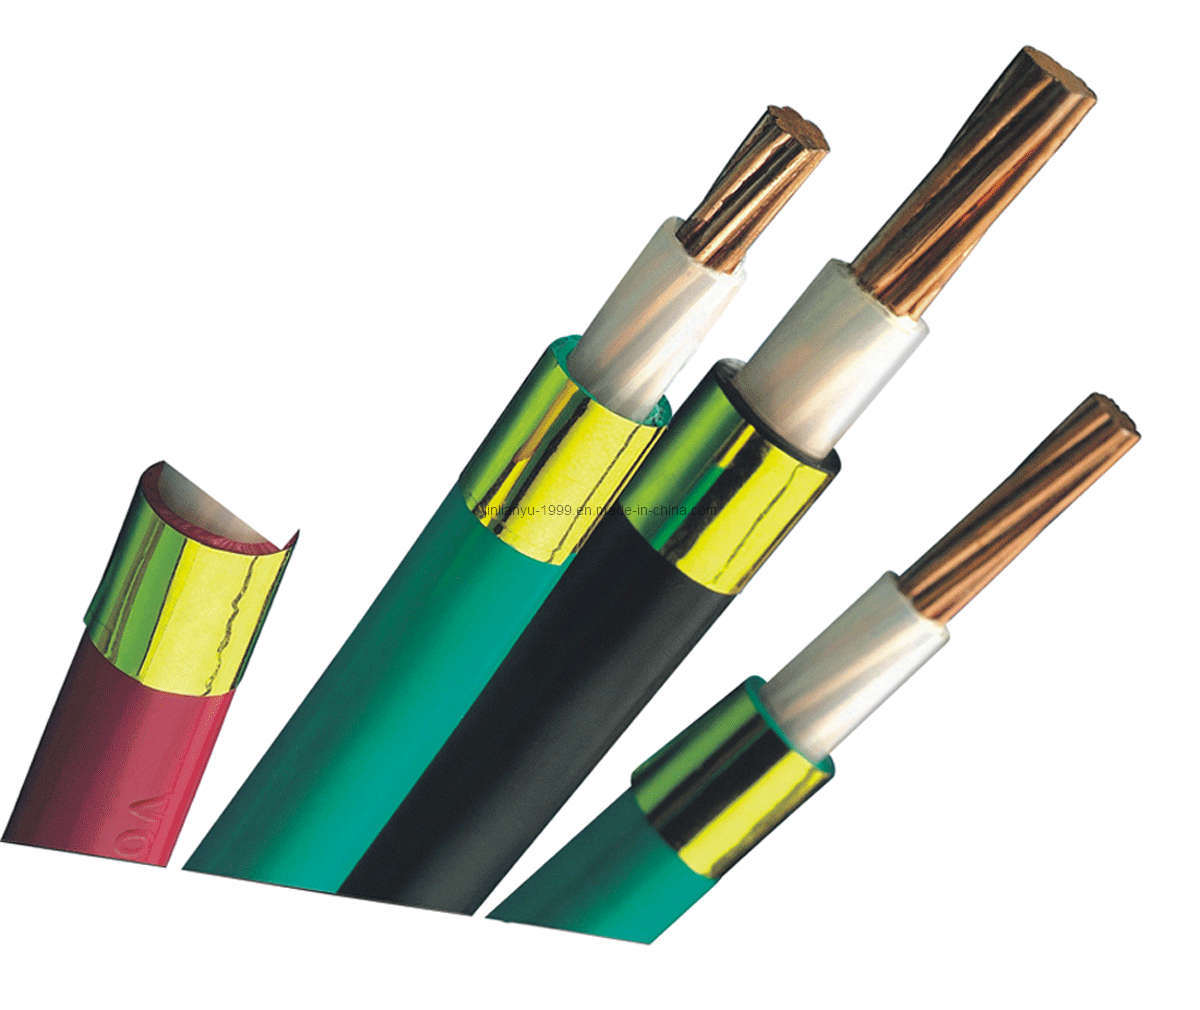 china power cable industry 2012 market Potential sales opportunities in renewables, nuclear power and the upgrade of the global electrical grid may be just around the corner for the wire and cable market.